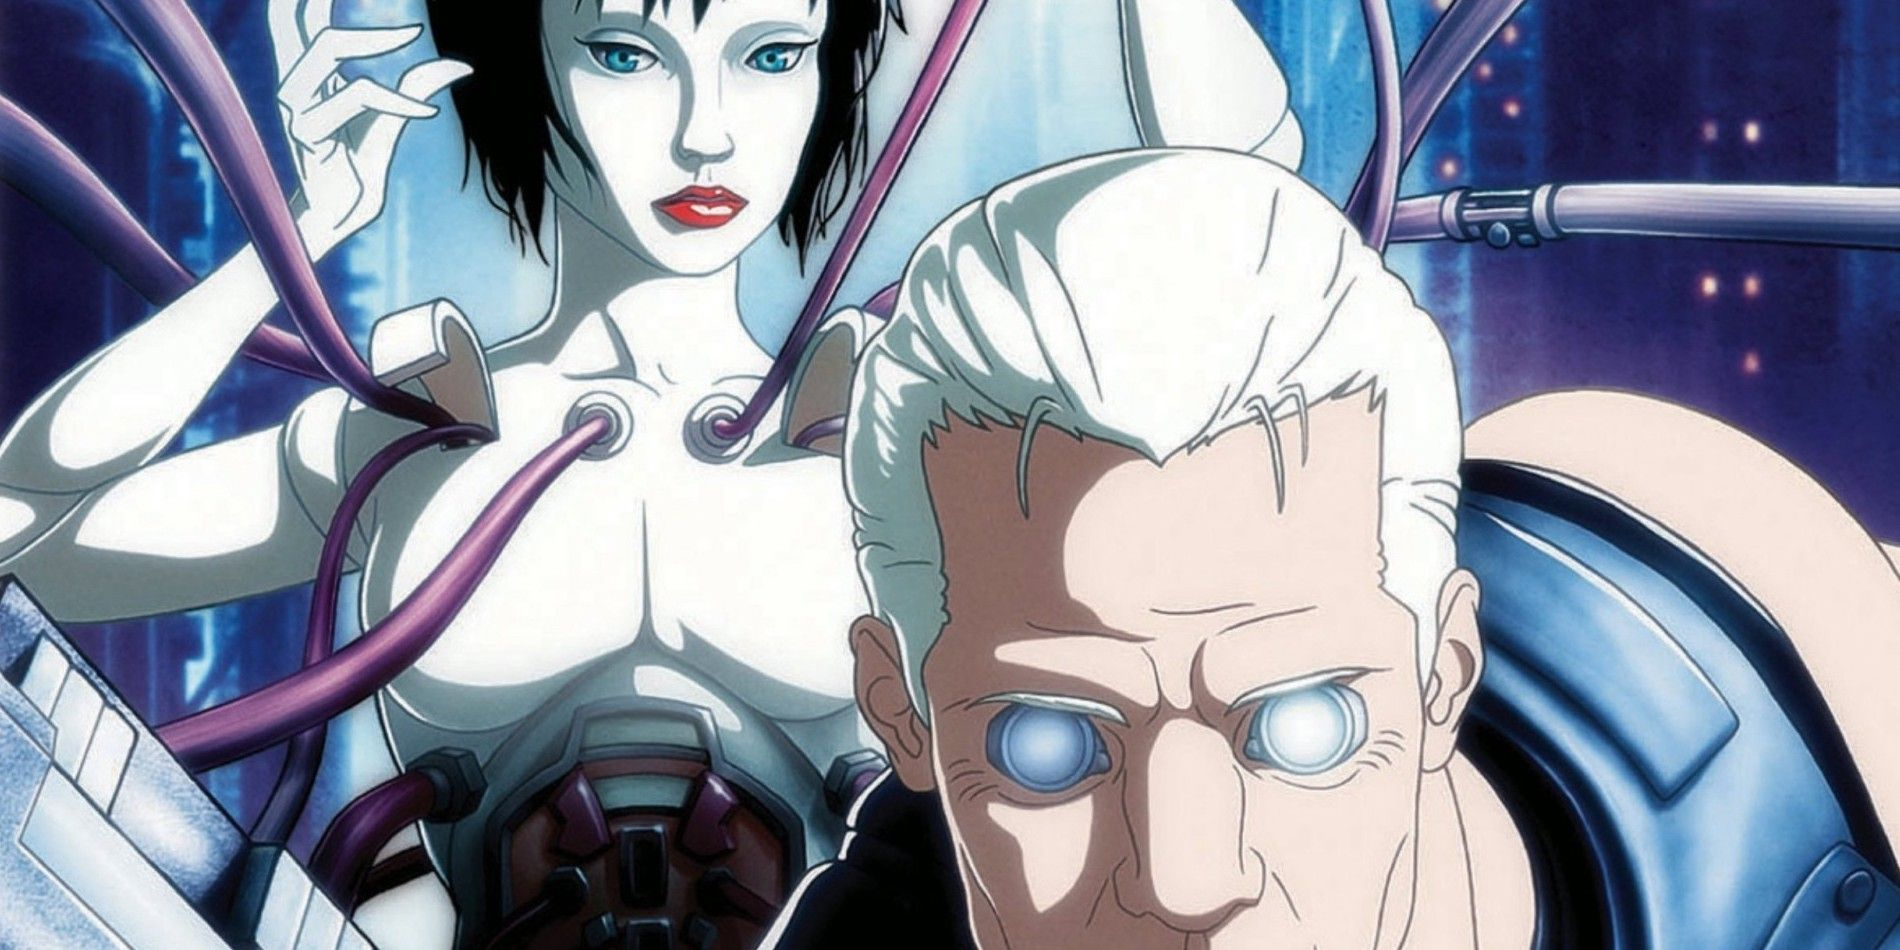 15 Things You Never Knew About Ghost In The Shell 2 Innocence